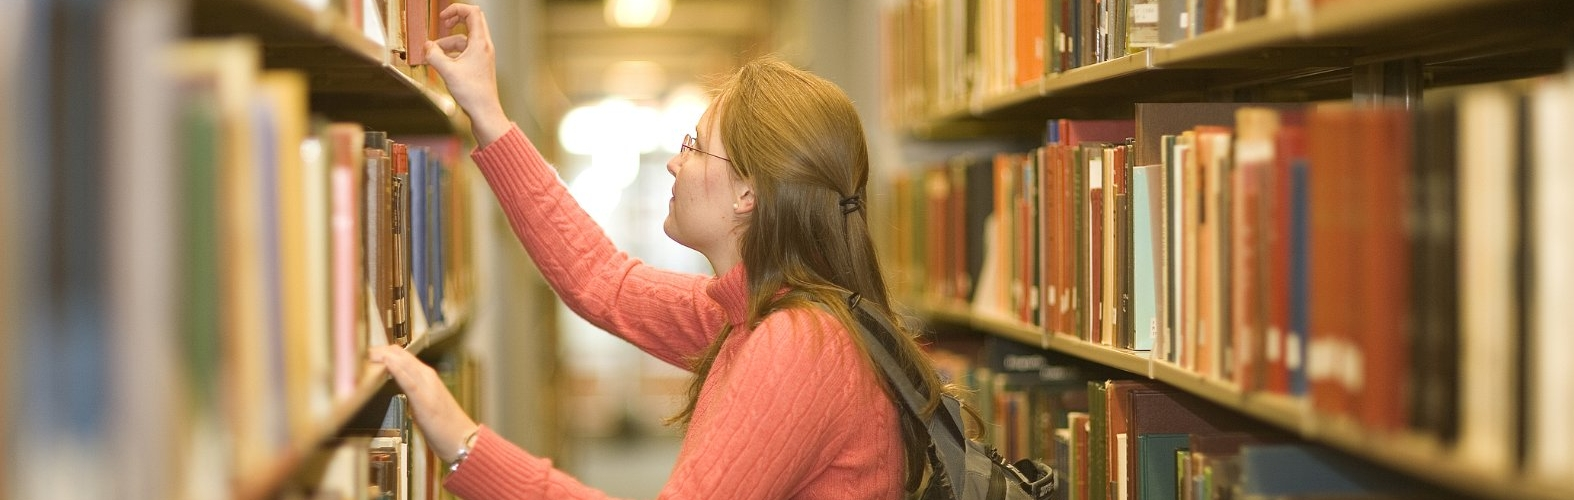 Young woman does research in a university library.